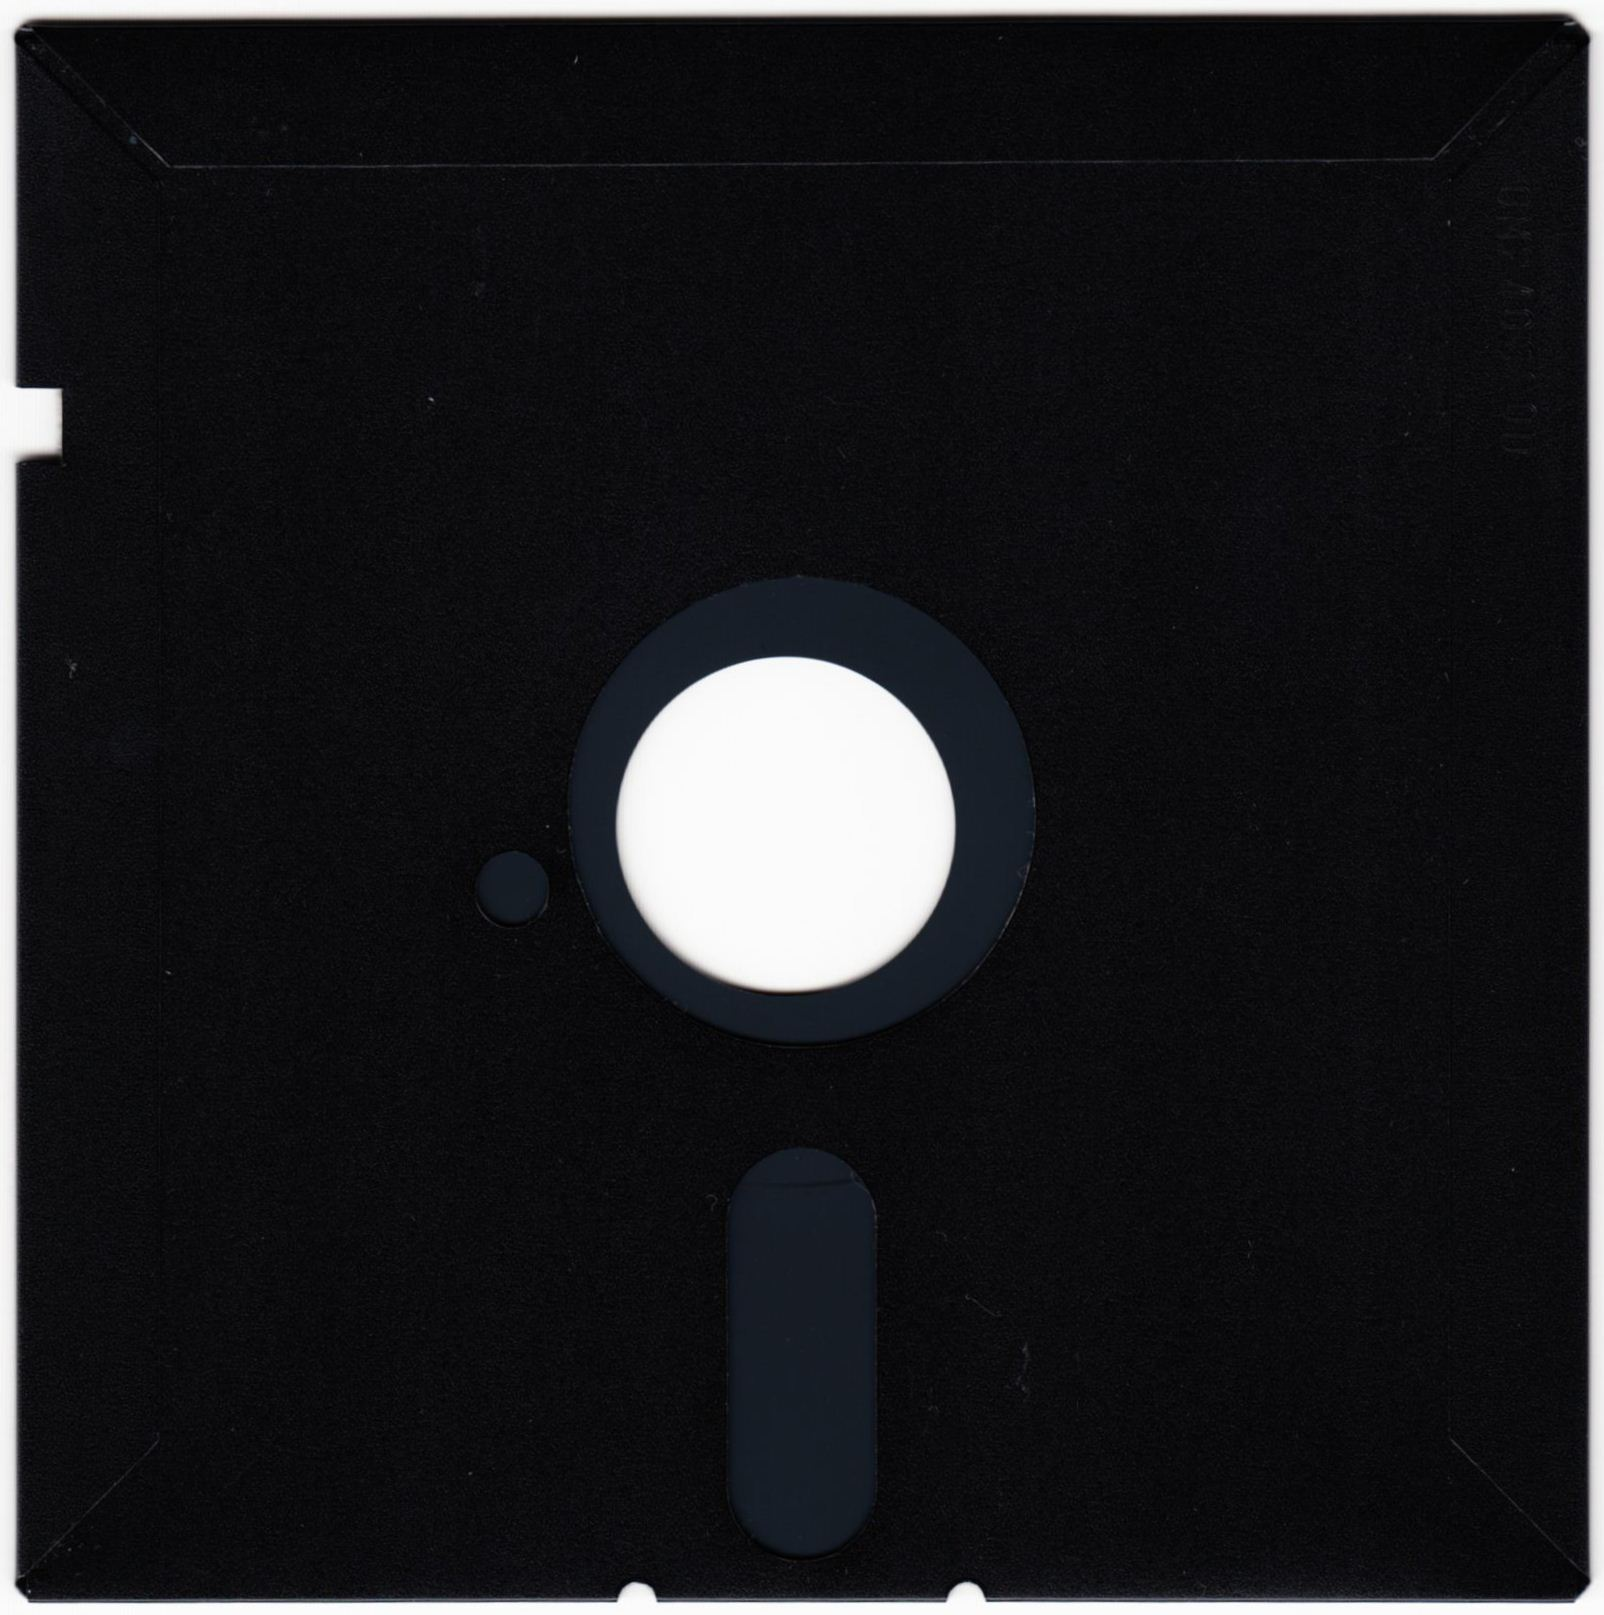 Game - Chaos Strikes Back - JP - PC-9801 - 5.25-inch - Save Disk - Back - Scan